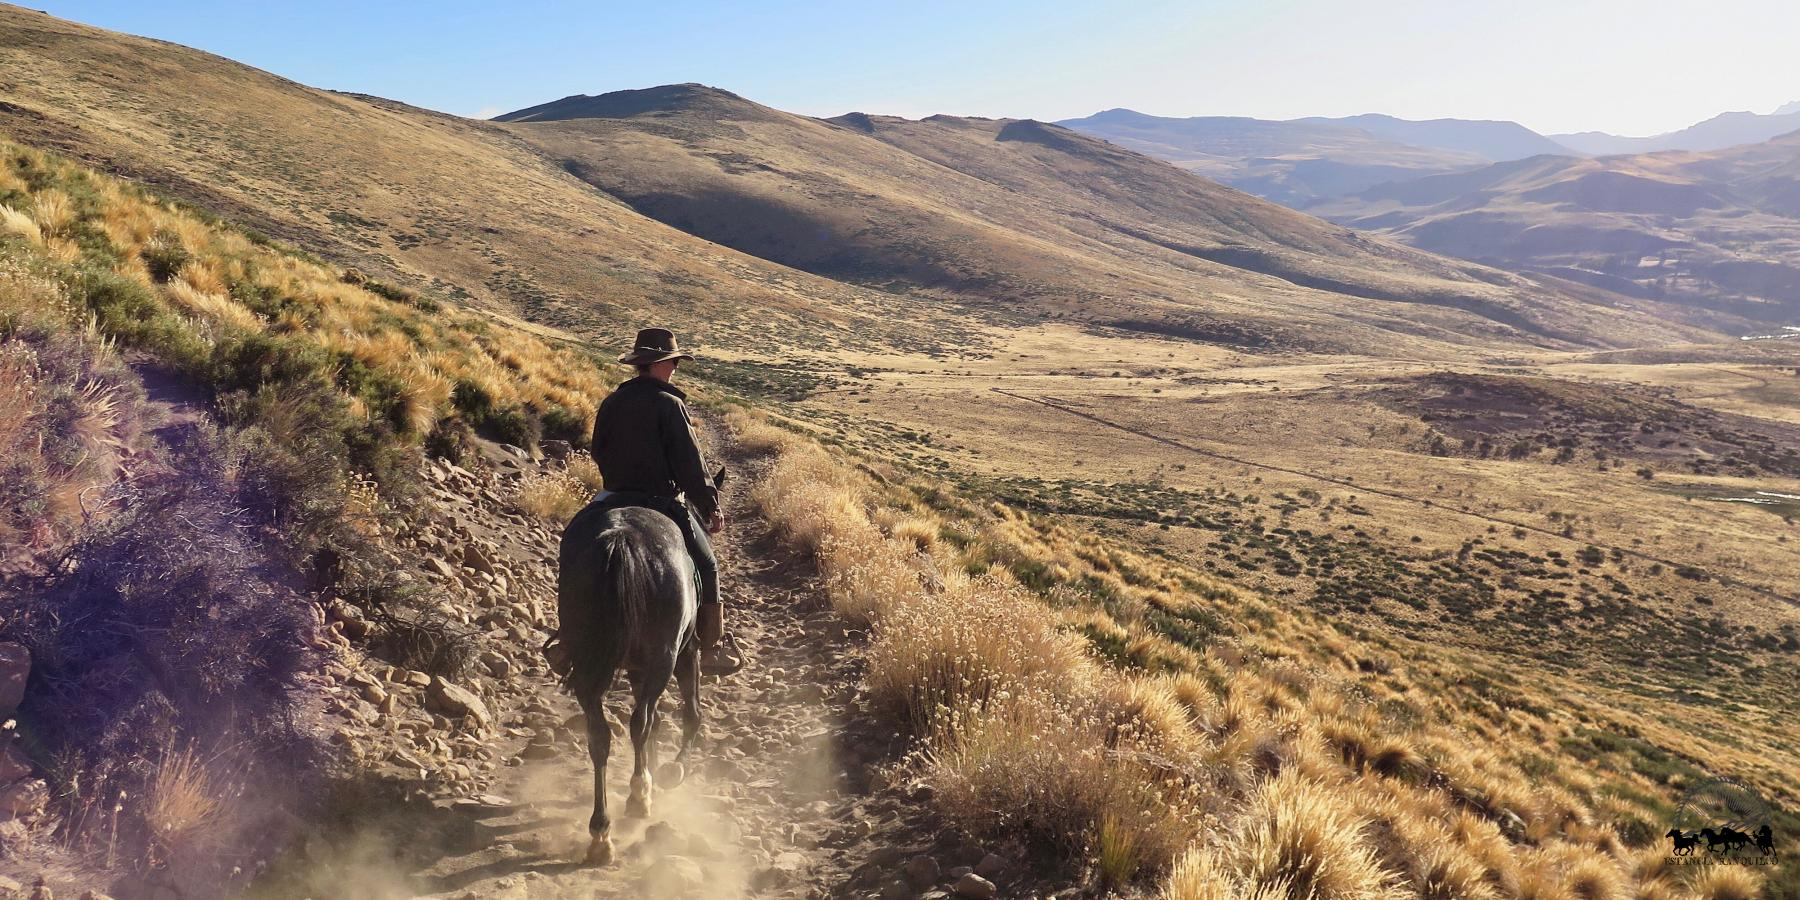 Arriving to Estancia Ranquilco by horse in Patagonia Argentina